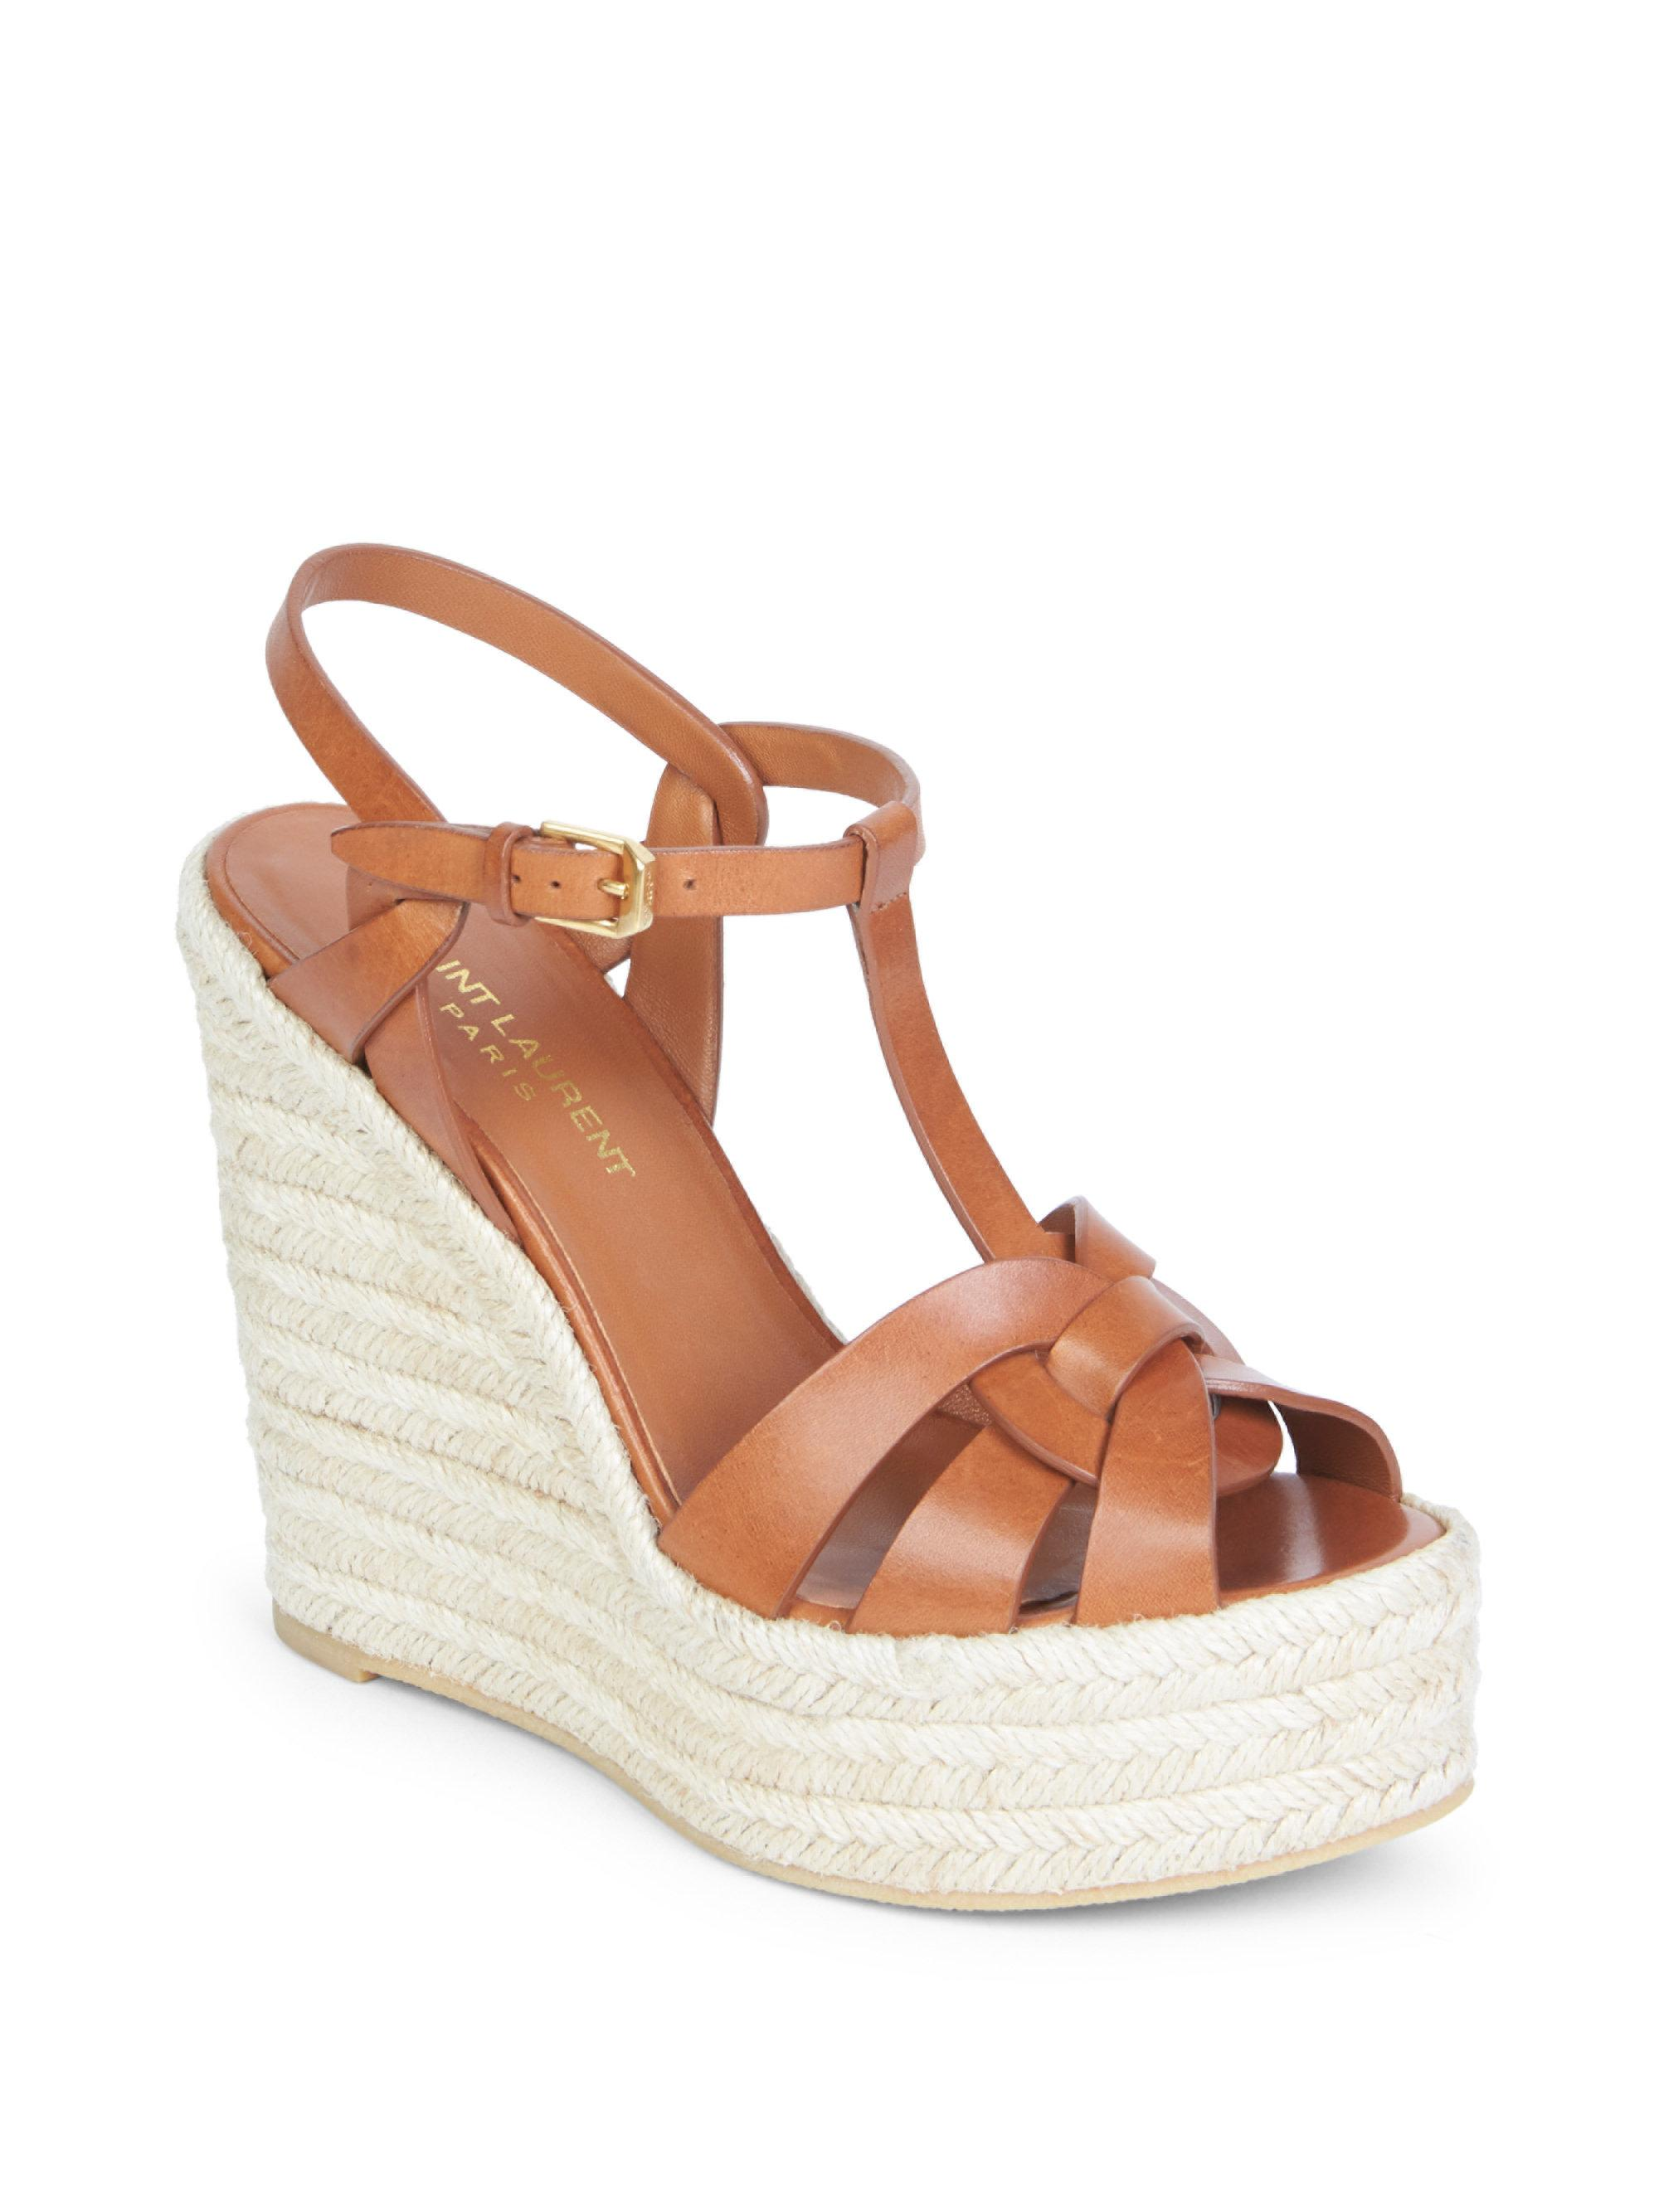 2b299302c37 Saint Laurent Tribute T-strap Leather Wedge Sandals in Brown - Lyst